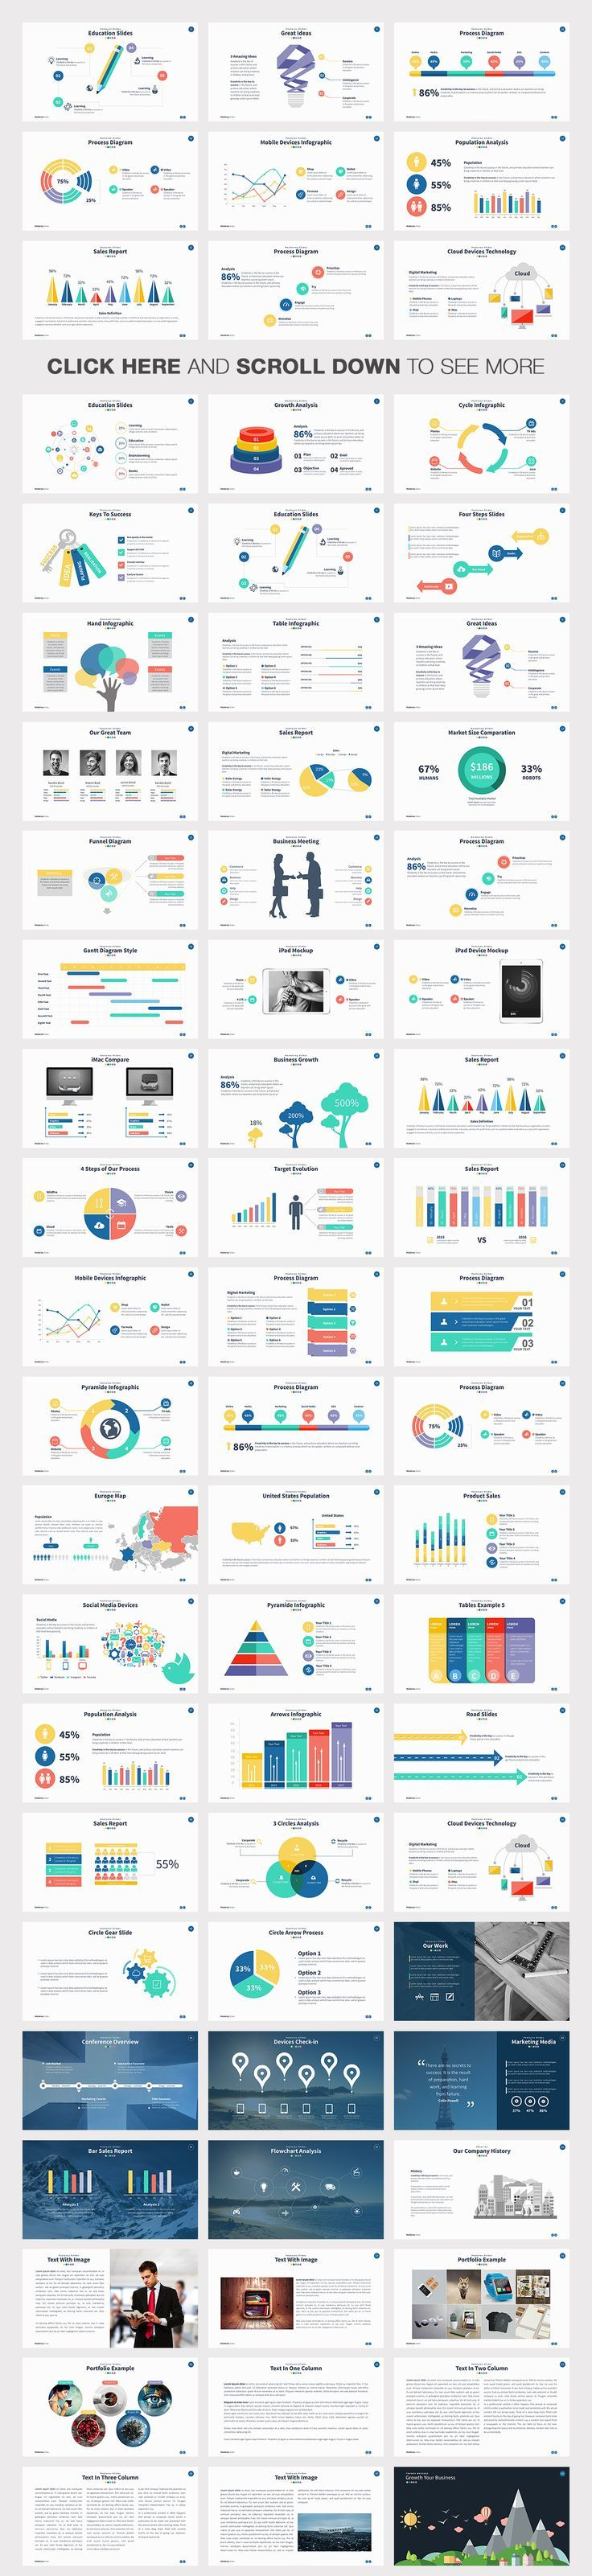 Infographics data visualization ppt rebellions infographics data visualization ppt publicscrutiny Images